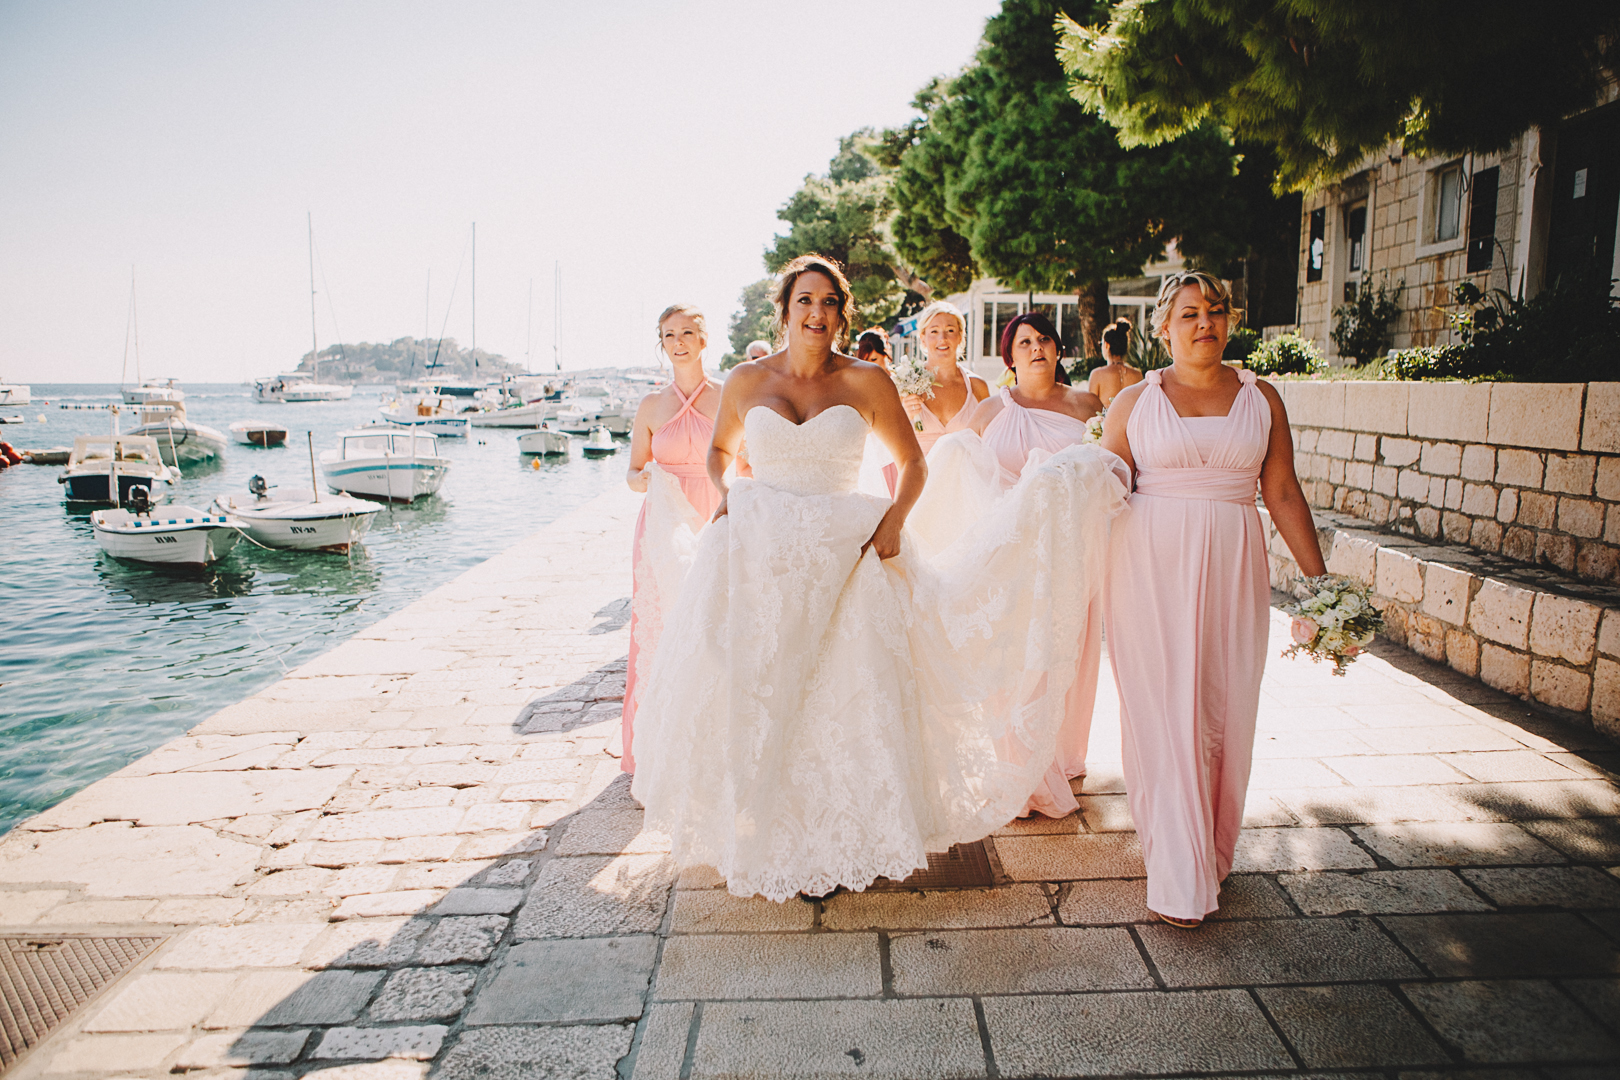 Croatia wedding ideas